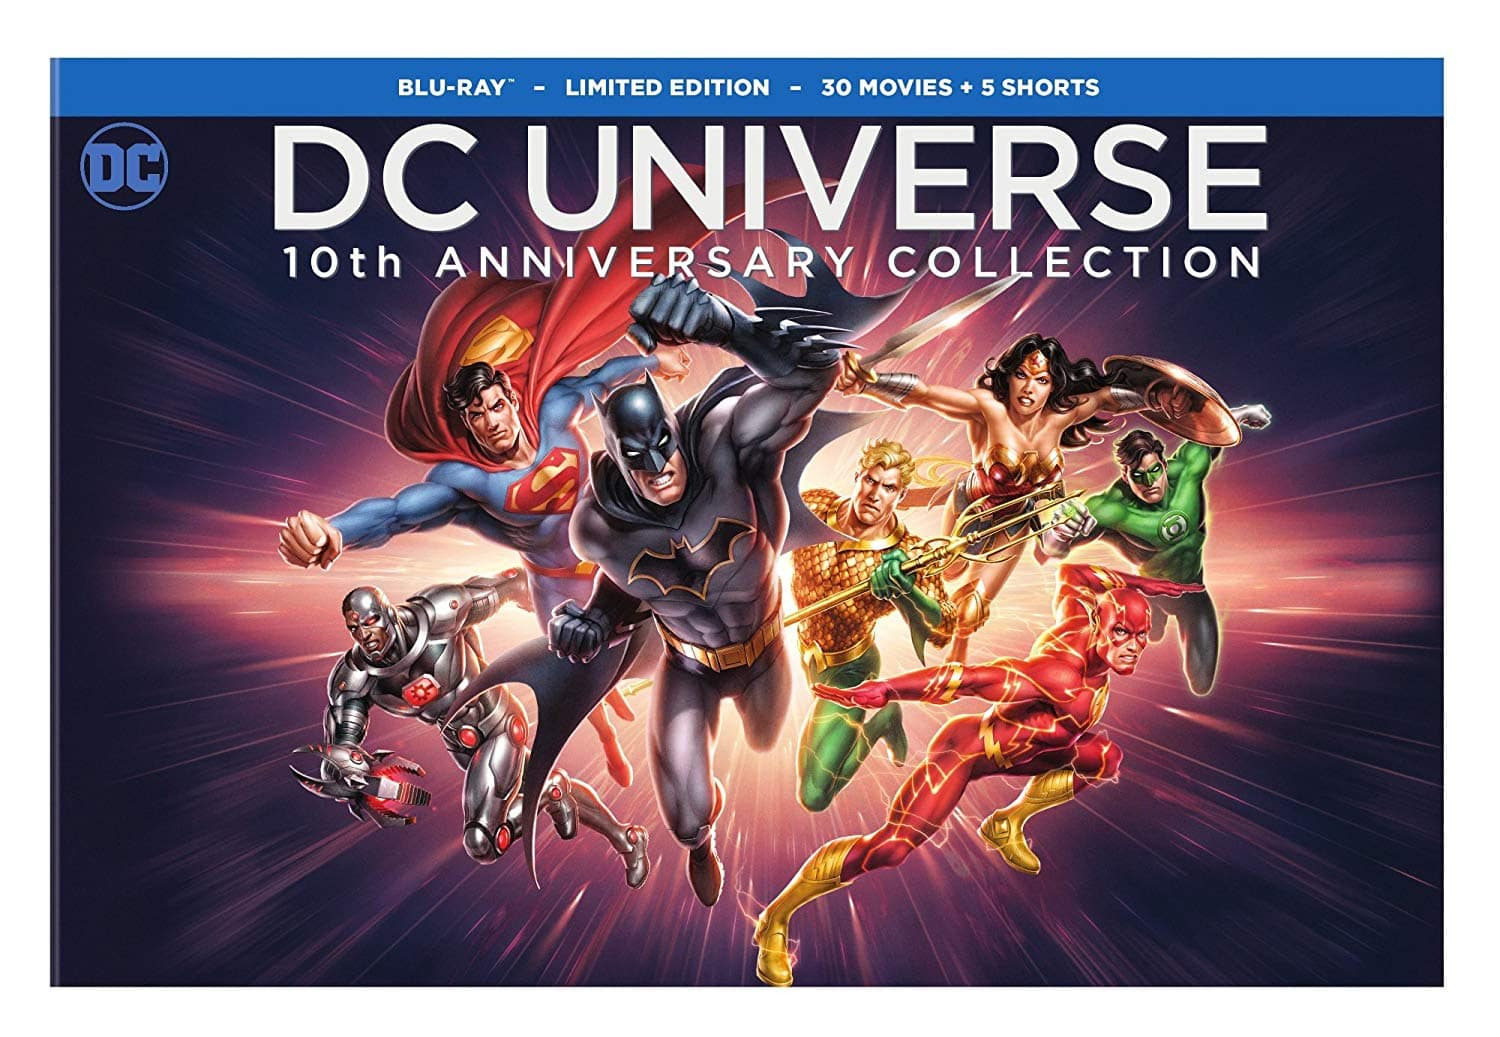 DC Universe Original Movies: 10th Anniversary Collection: 30 Movies + 5 Animated Shorts (Blu-Ray) $99.99 + Free Shipping via Amazon